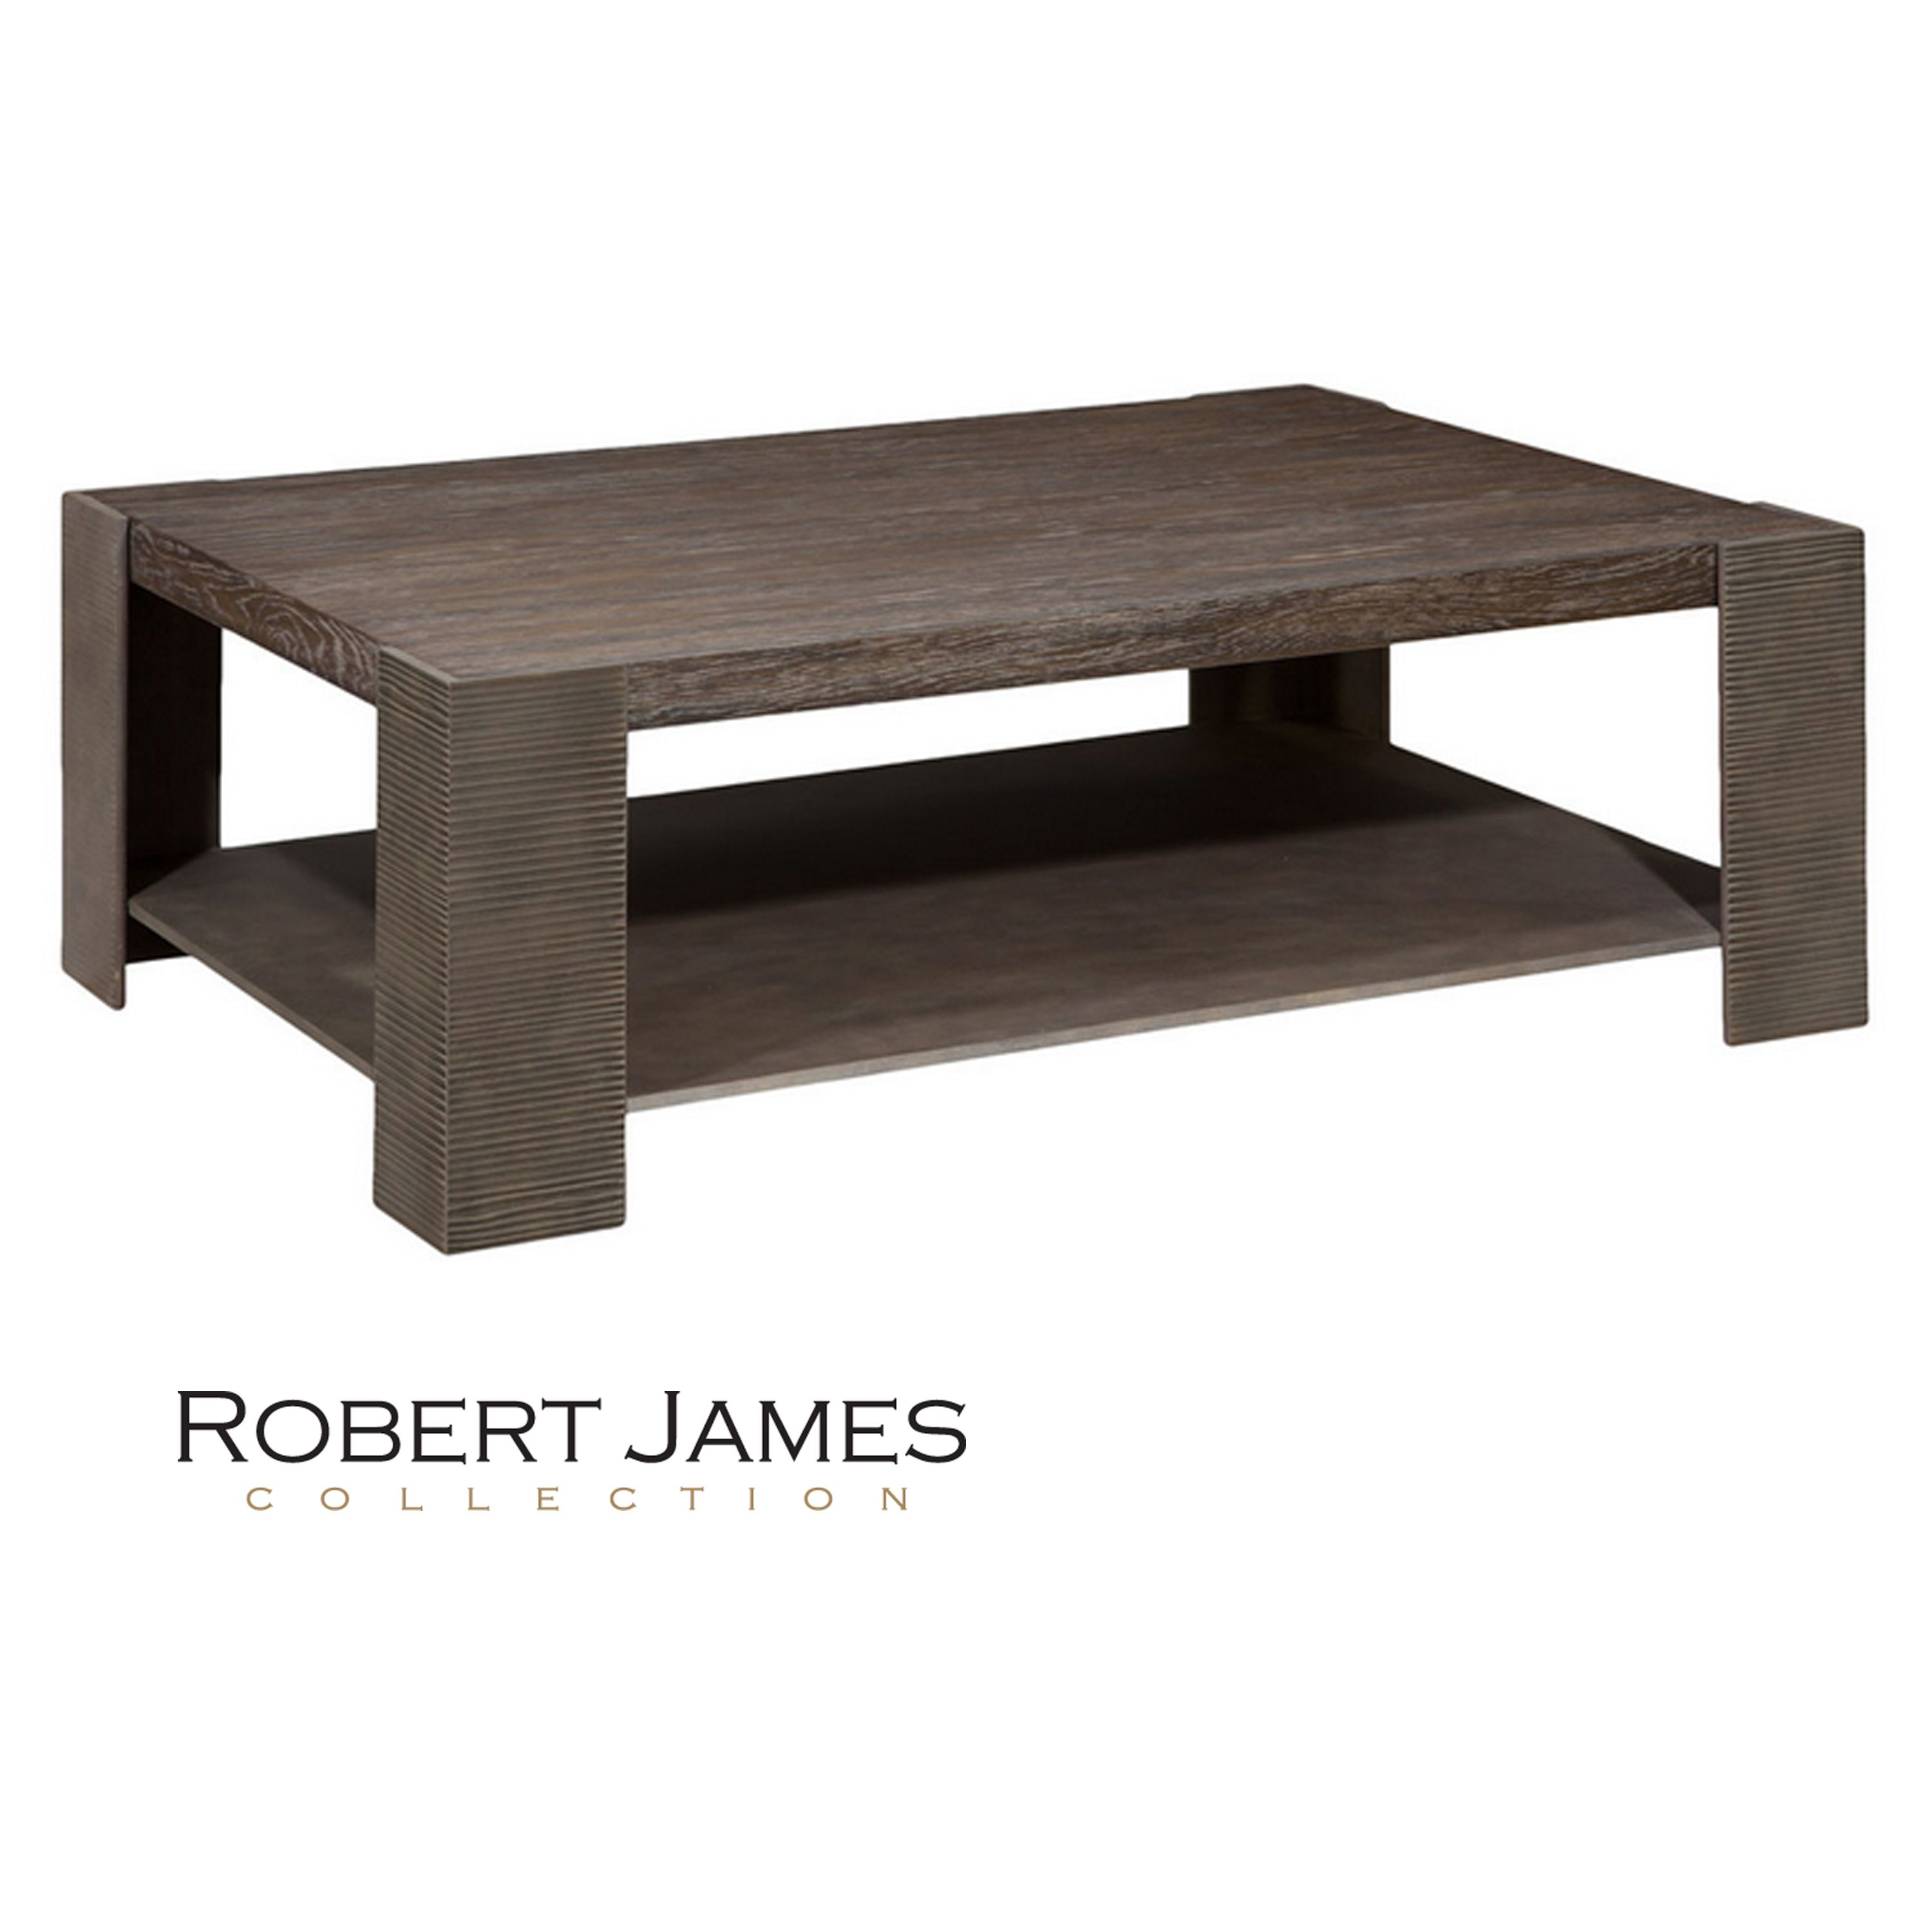 The CAYMAN COCKTAIL TABLE By The Robert James Collection - Custom size coffee table